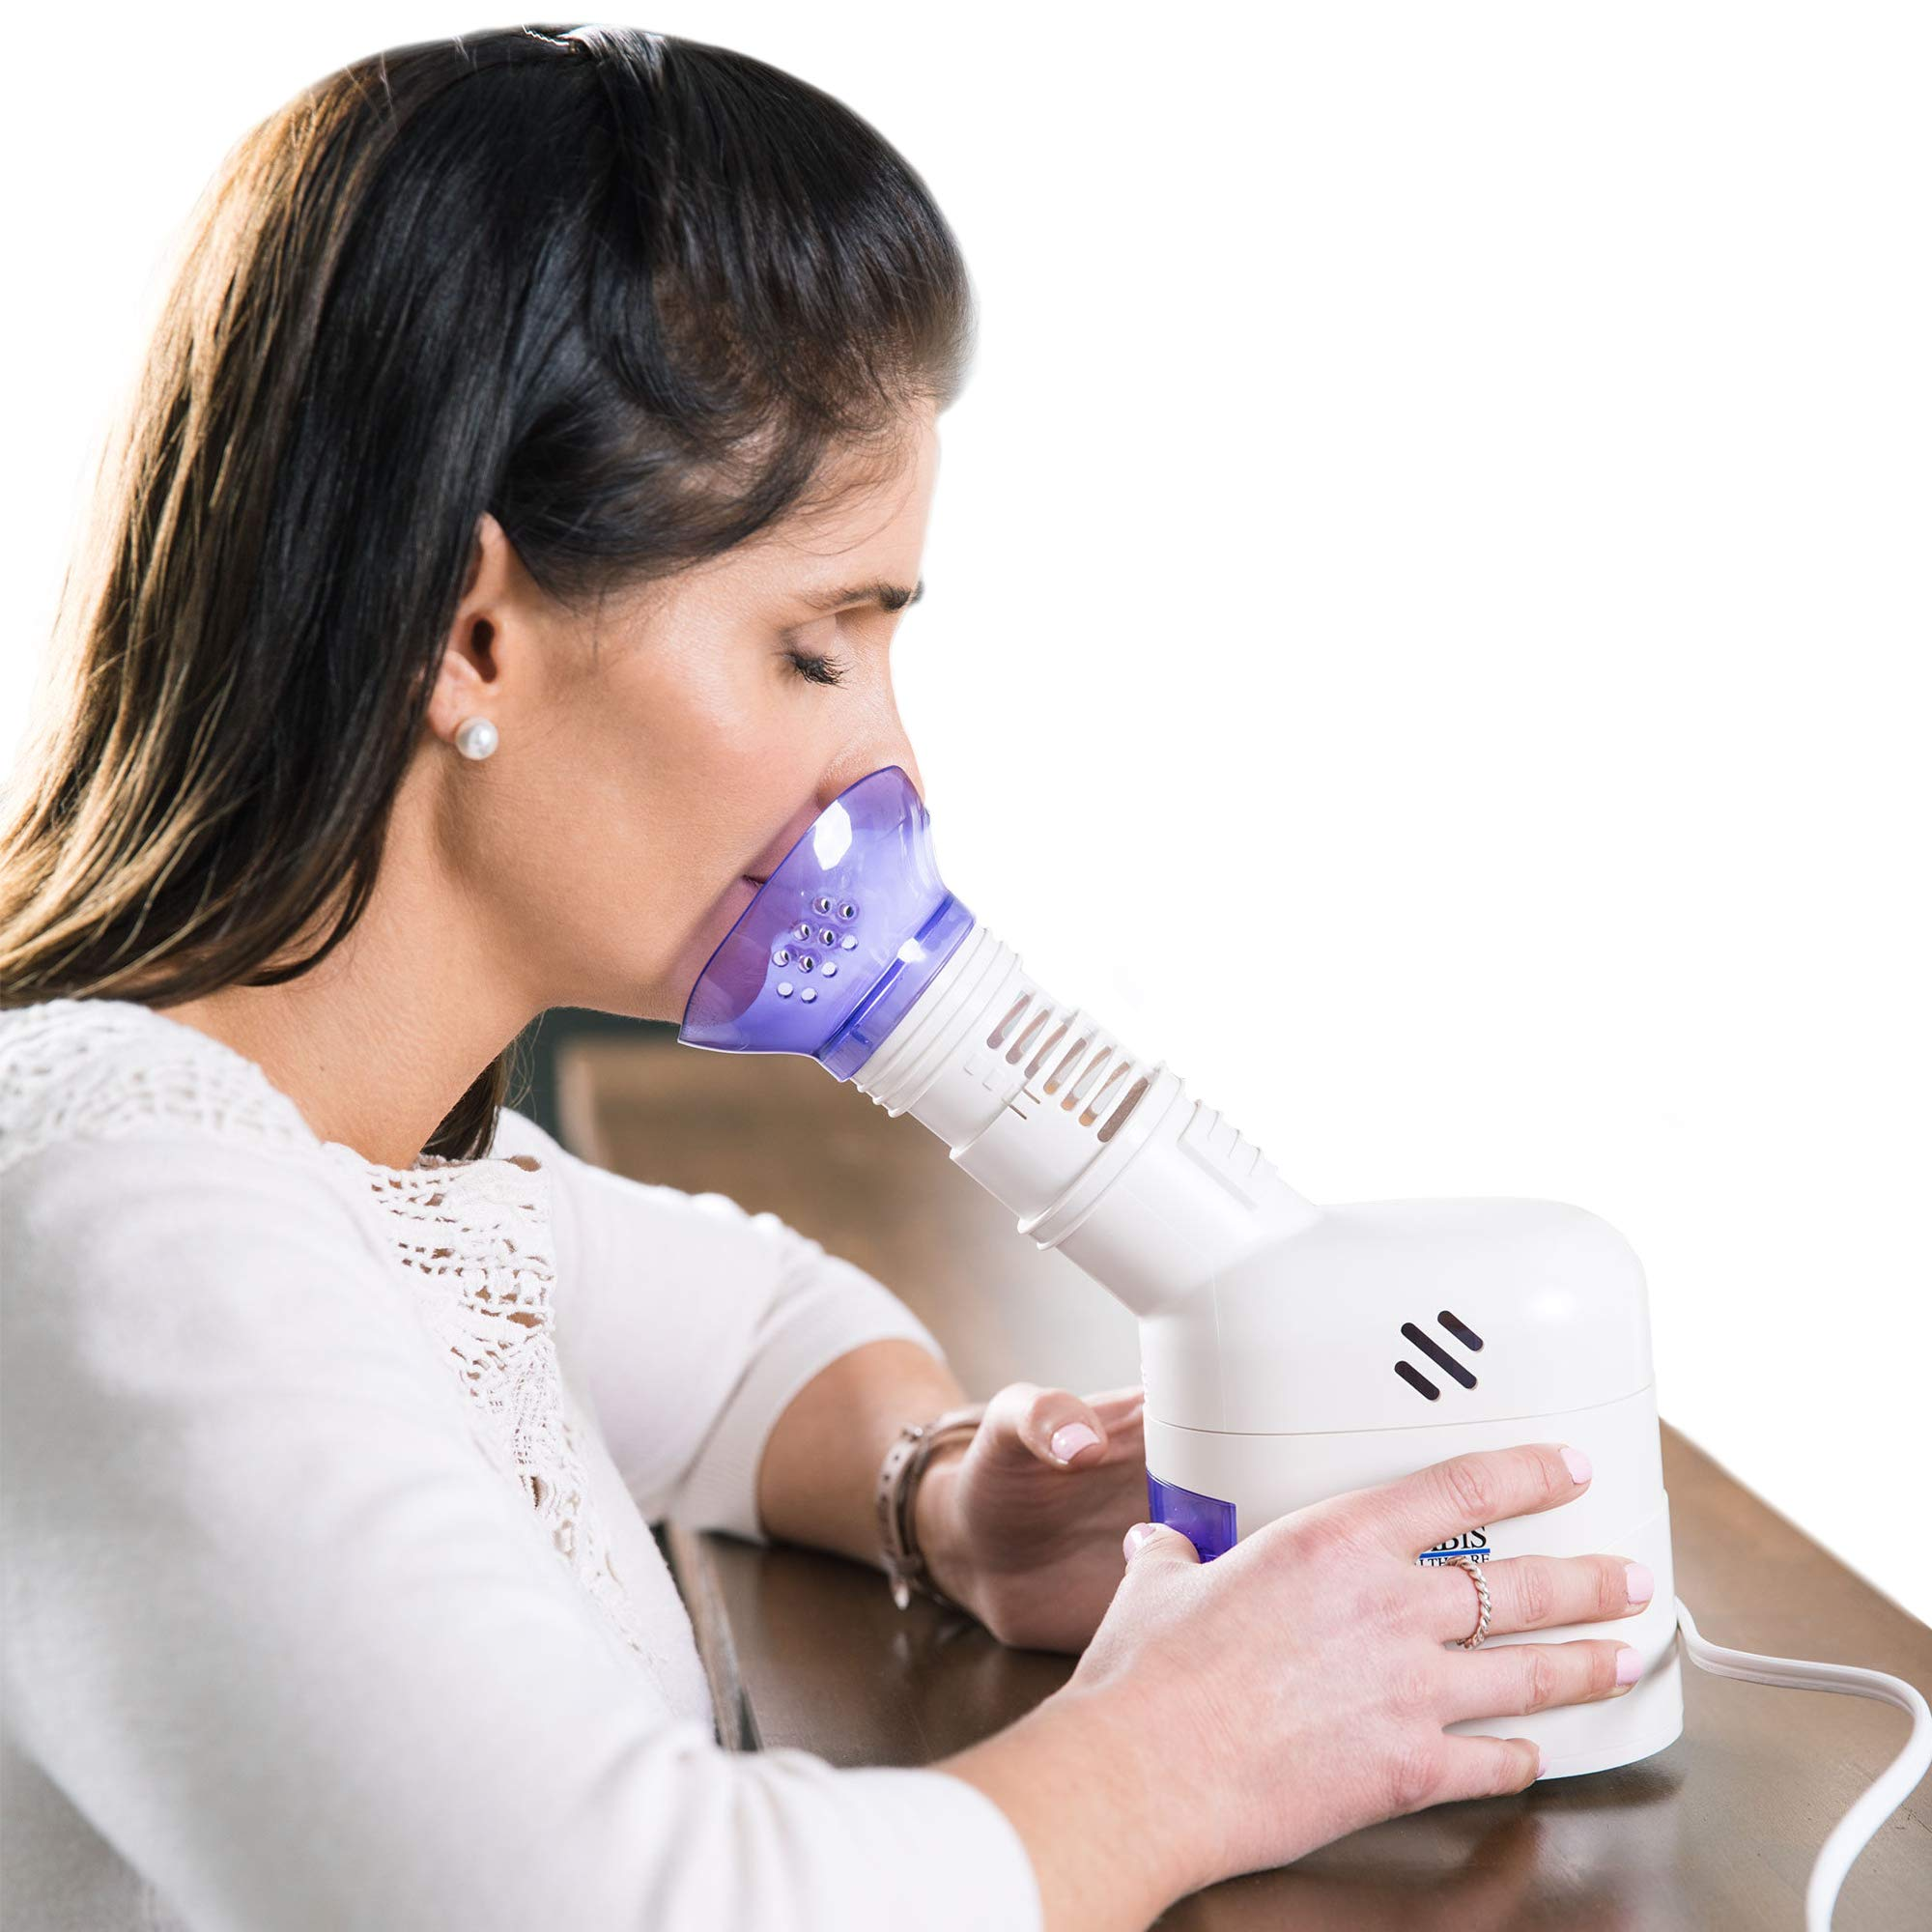 MABIS Personal Steam Inhaler Vaporizer with Aromatherapy Diffuser, Purple and White by Mabis